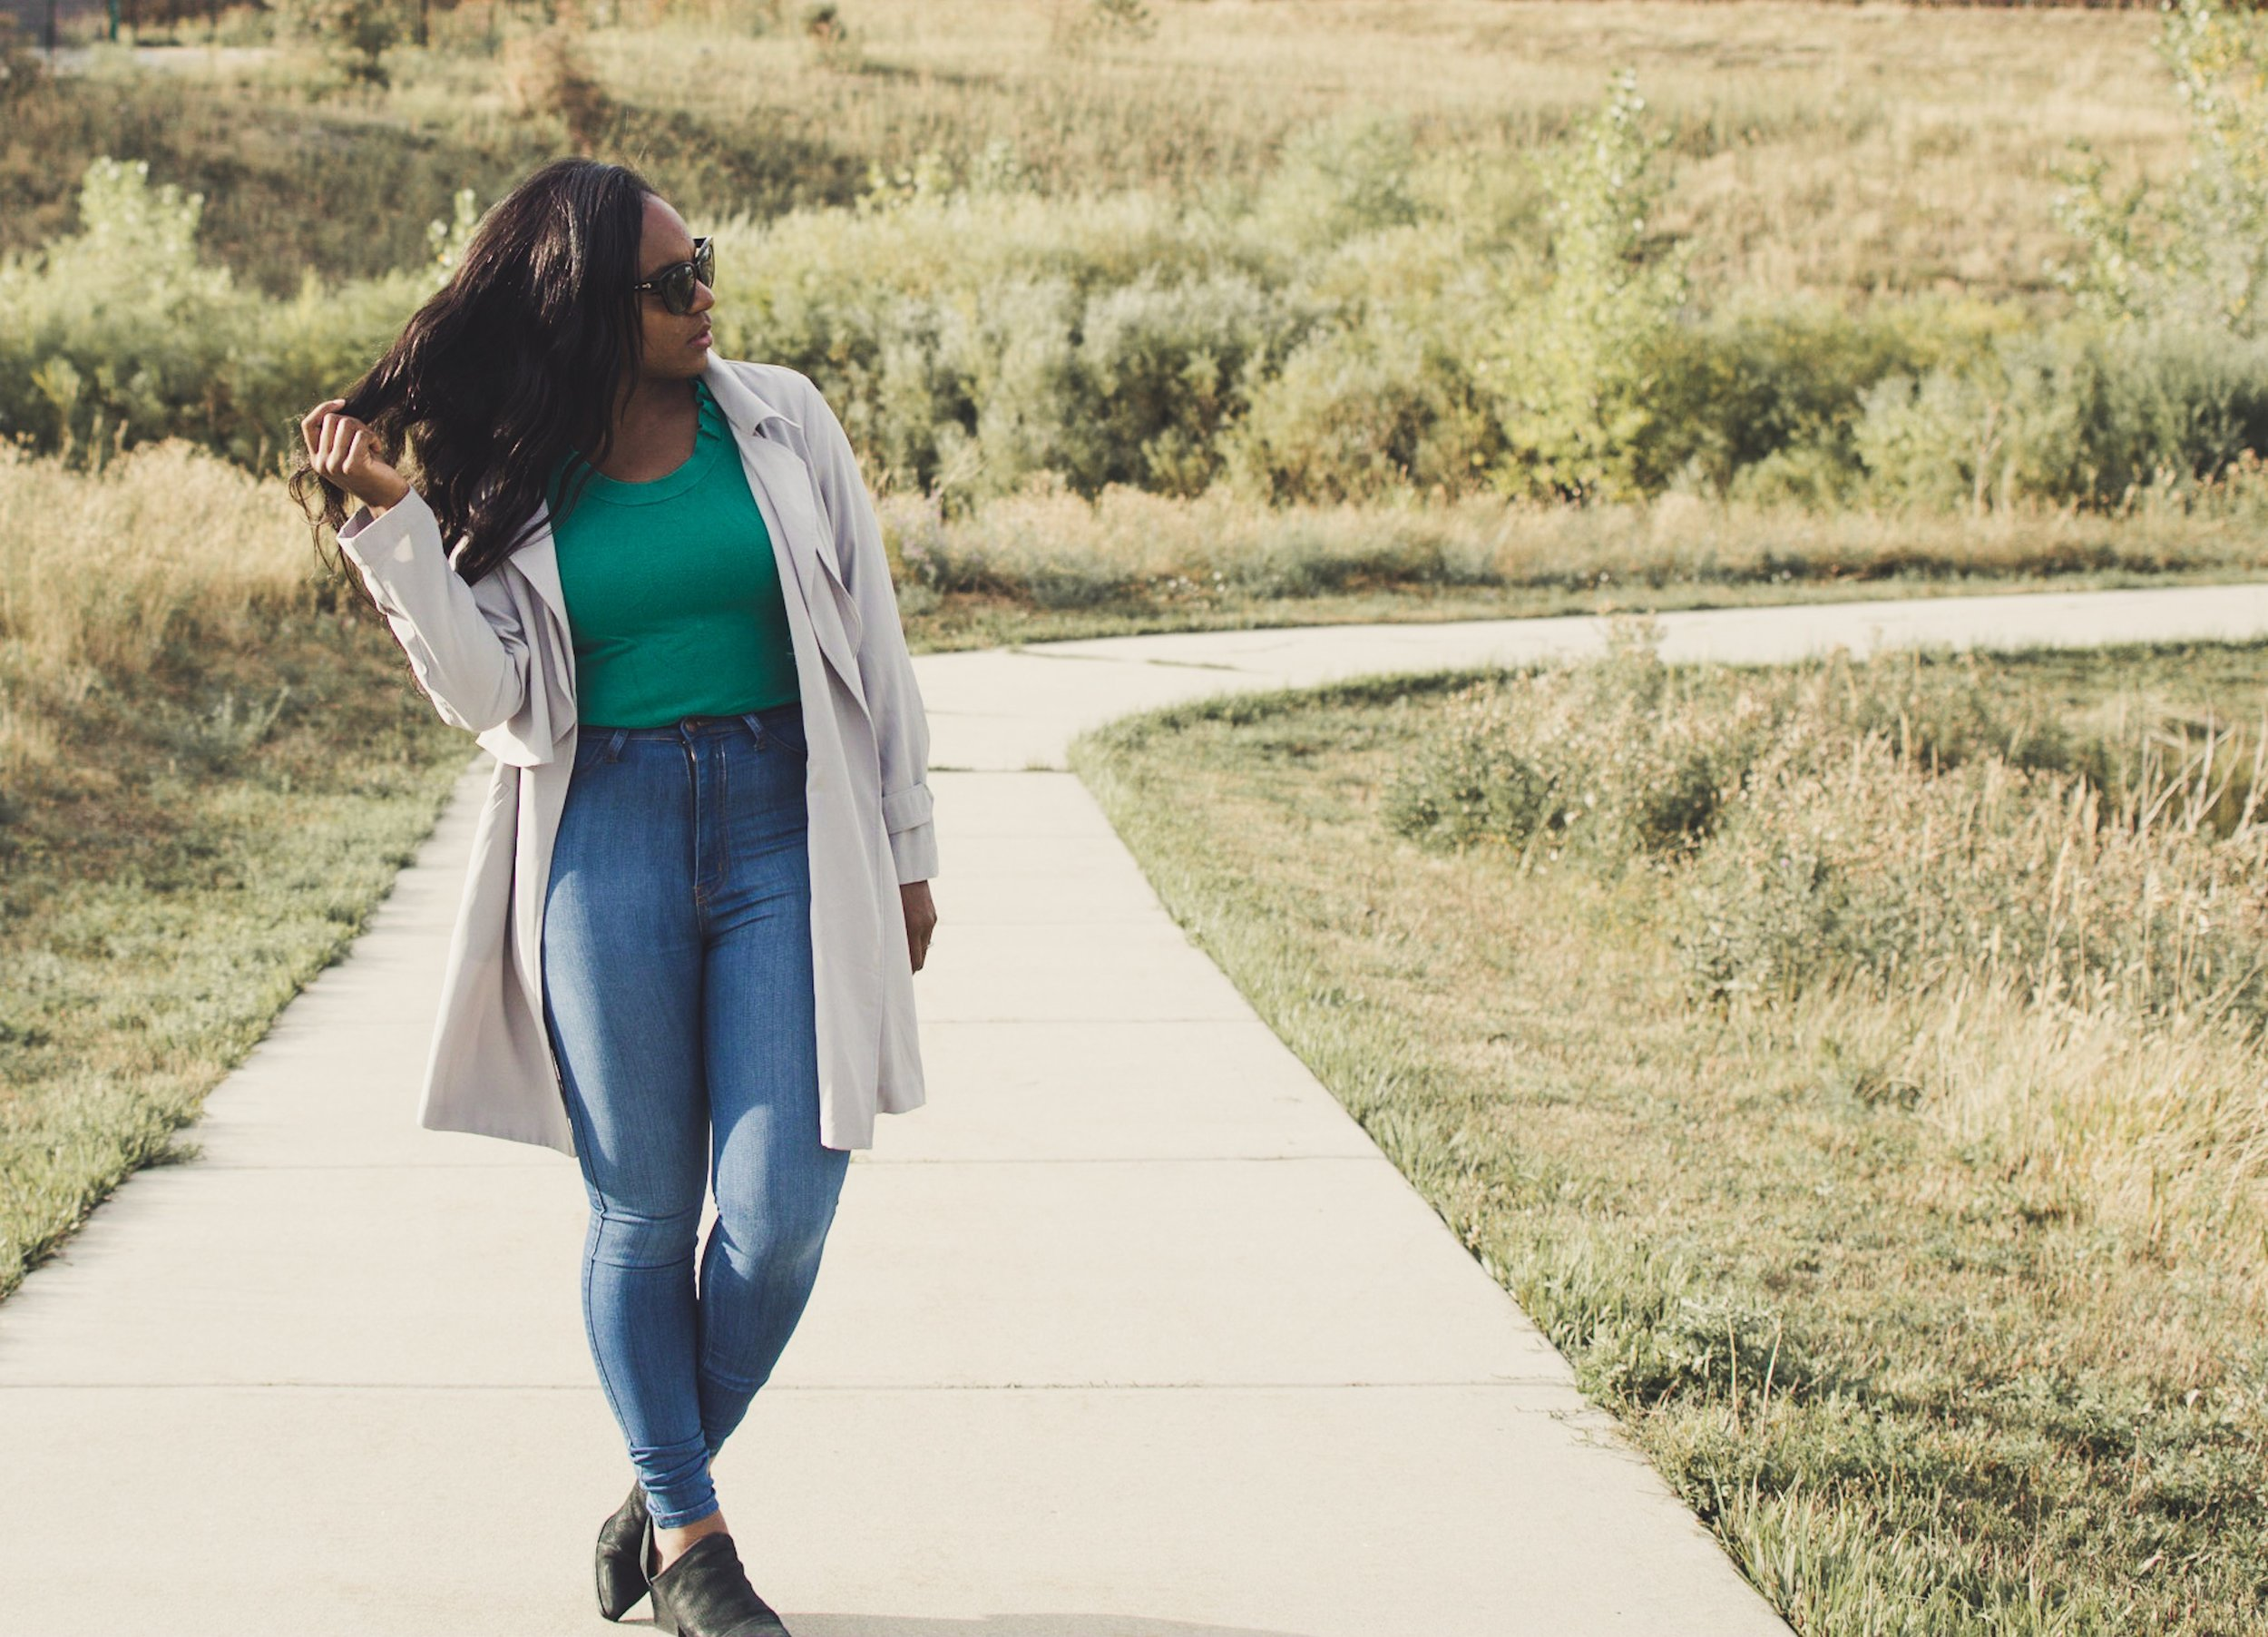 Duster jacket: Michael Kors; Jeans: FashionNova; Top: New York and Company; Booties: Steve Madden